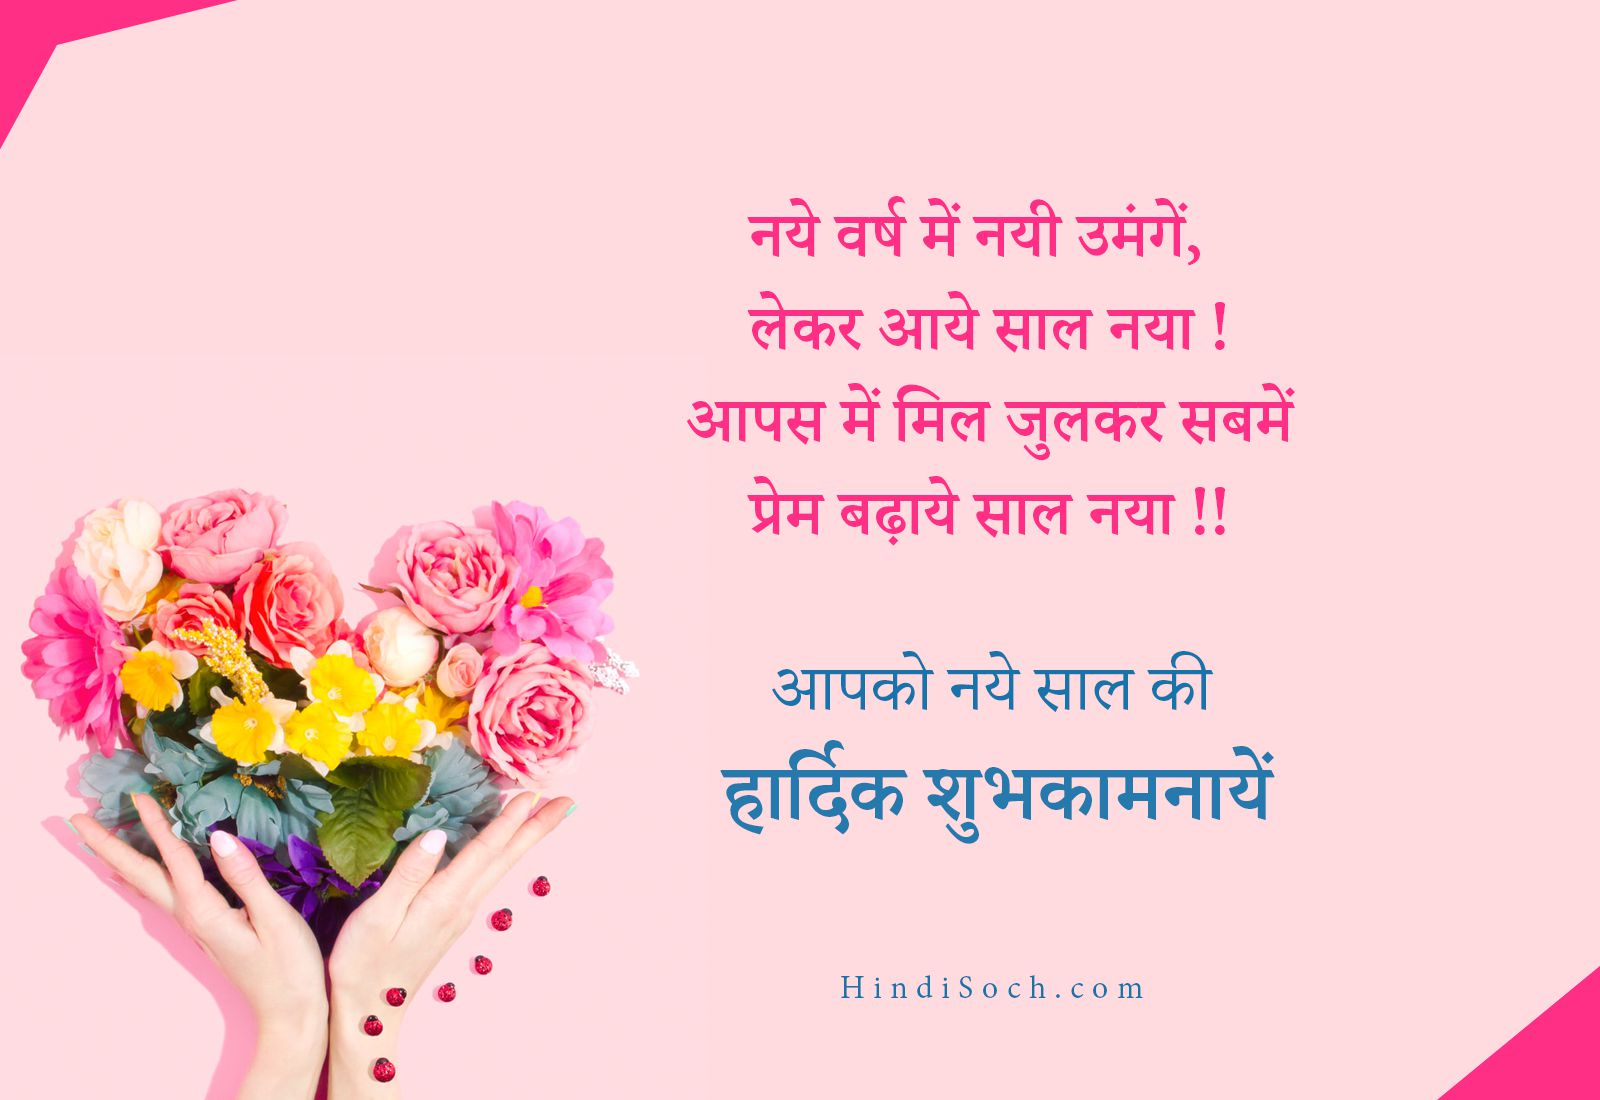 Hindi Happy New Year Shayari Photos